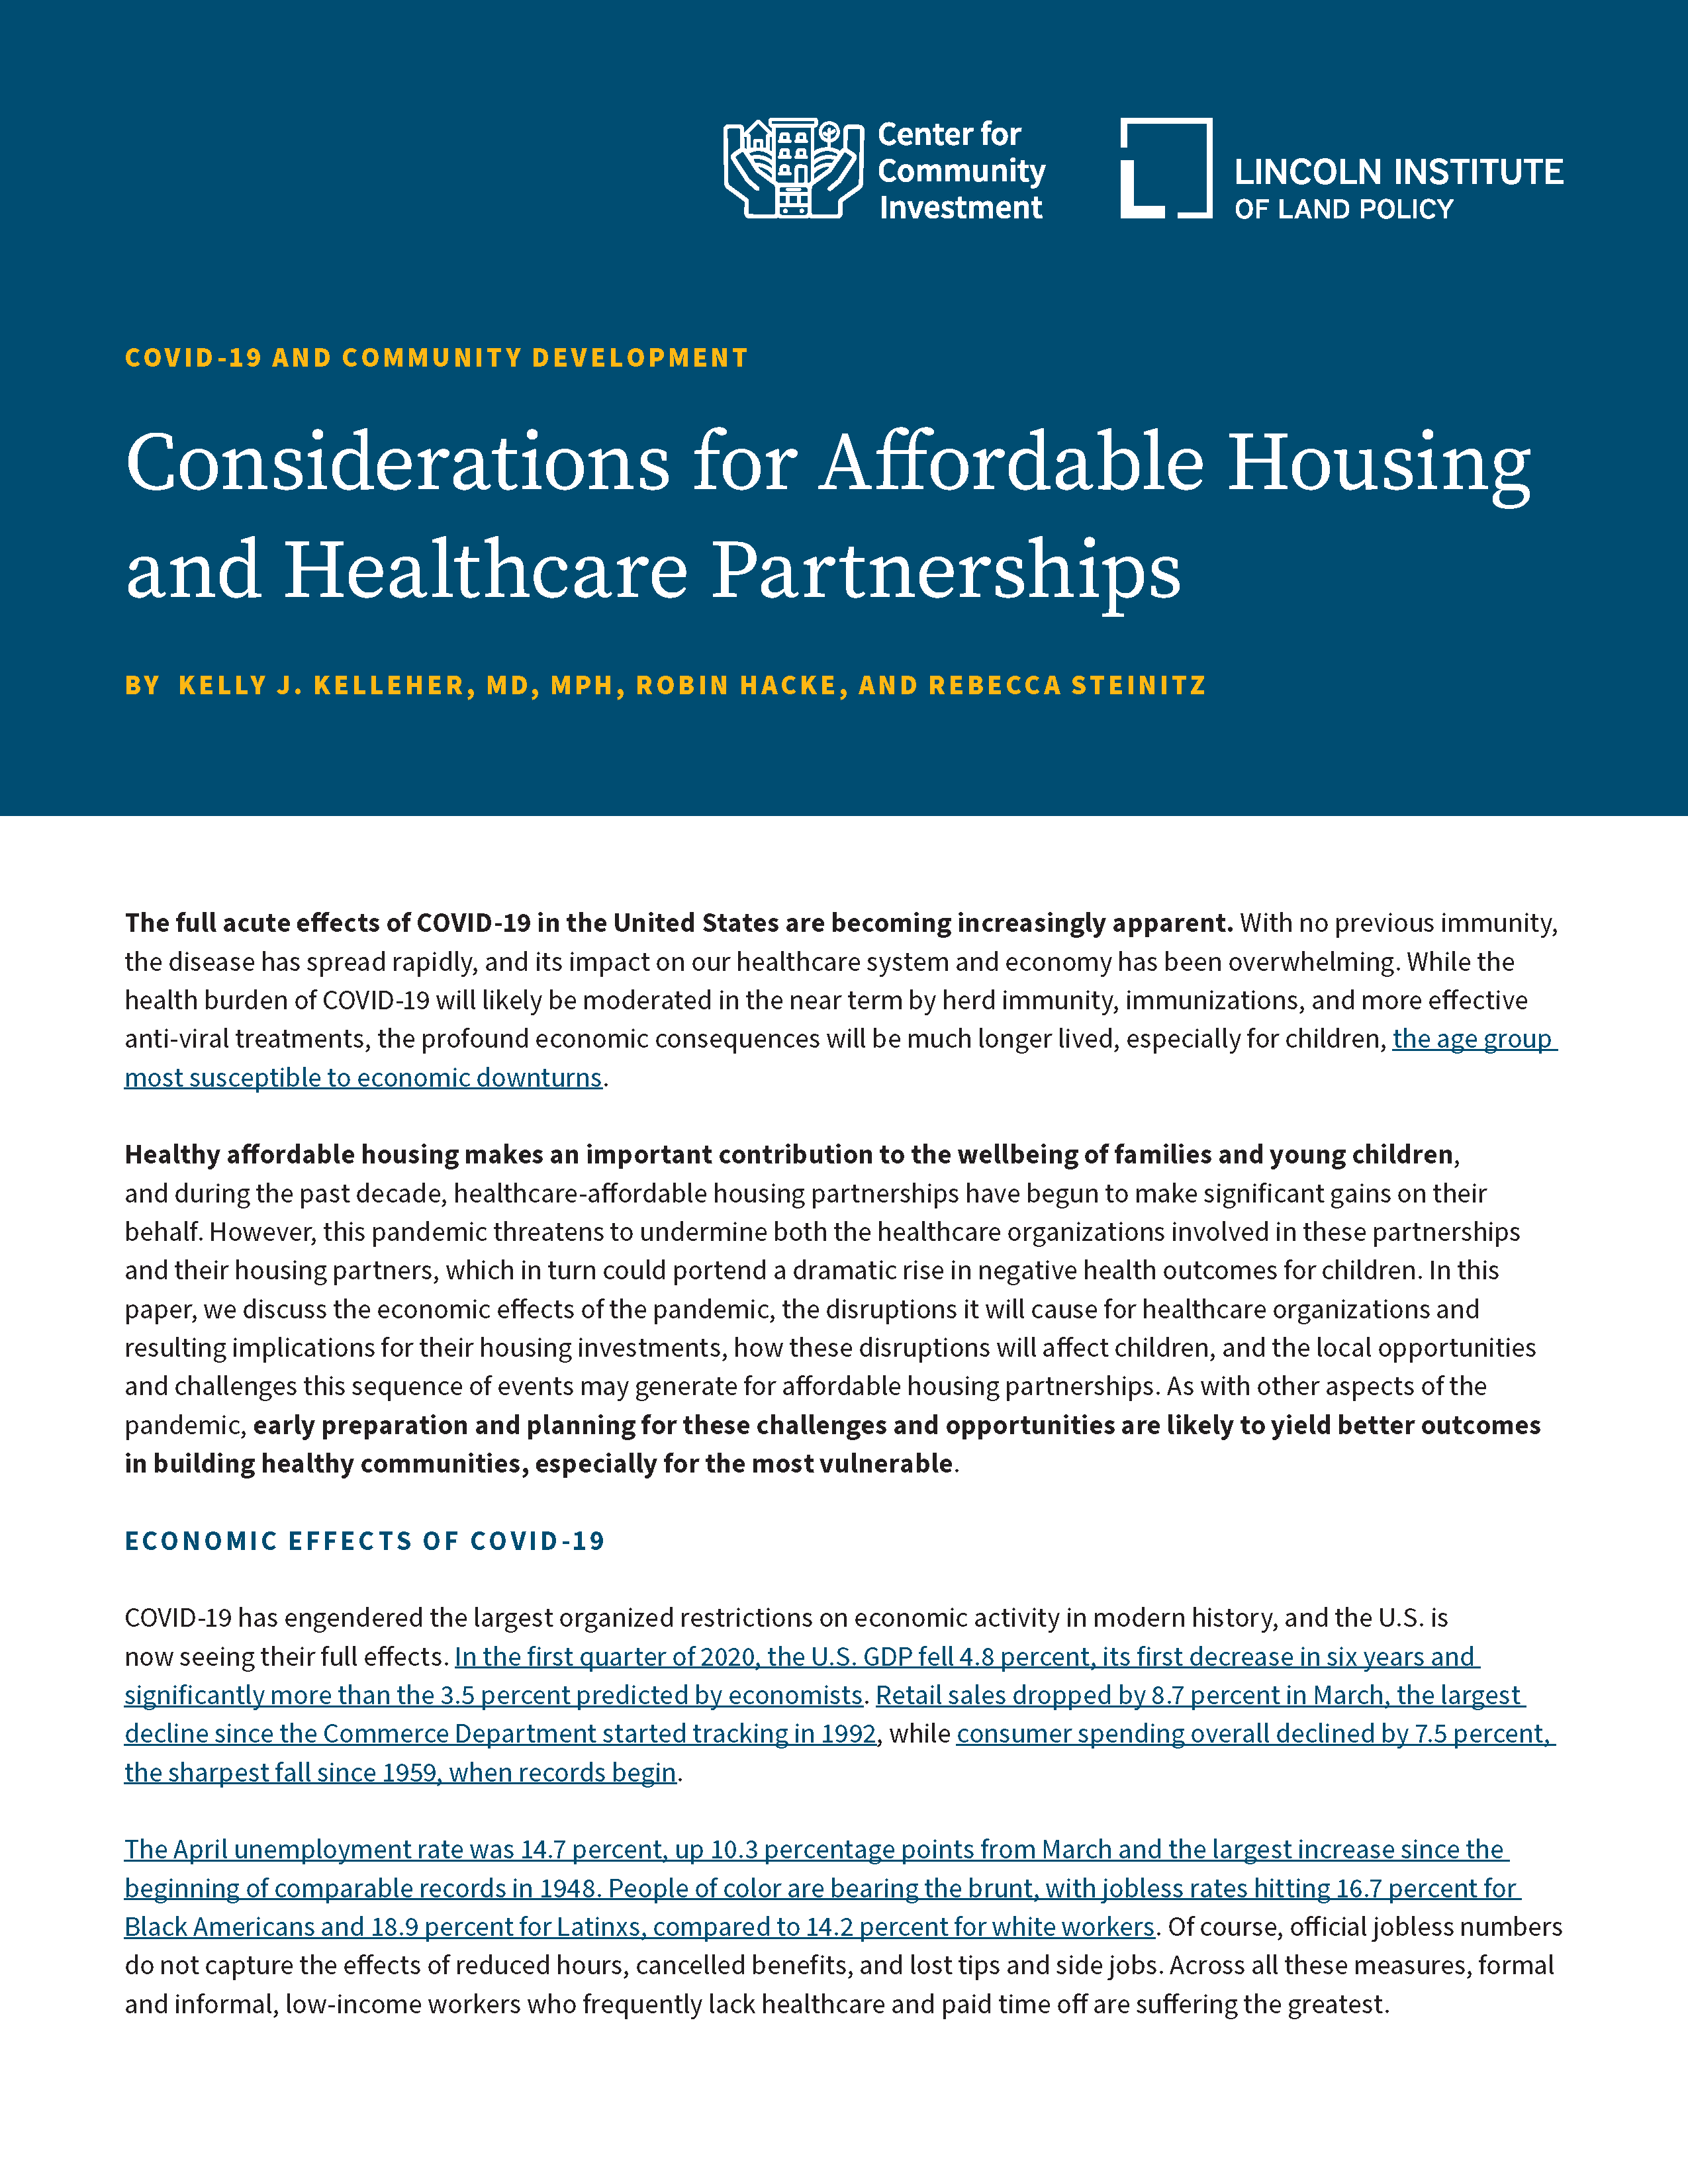 COVID-19 and Community Development: Considerations for Affordable Housing and Healthcare Partnership